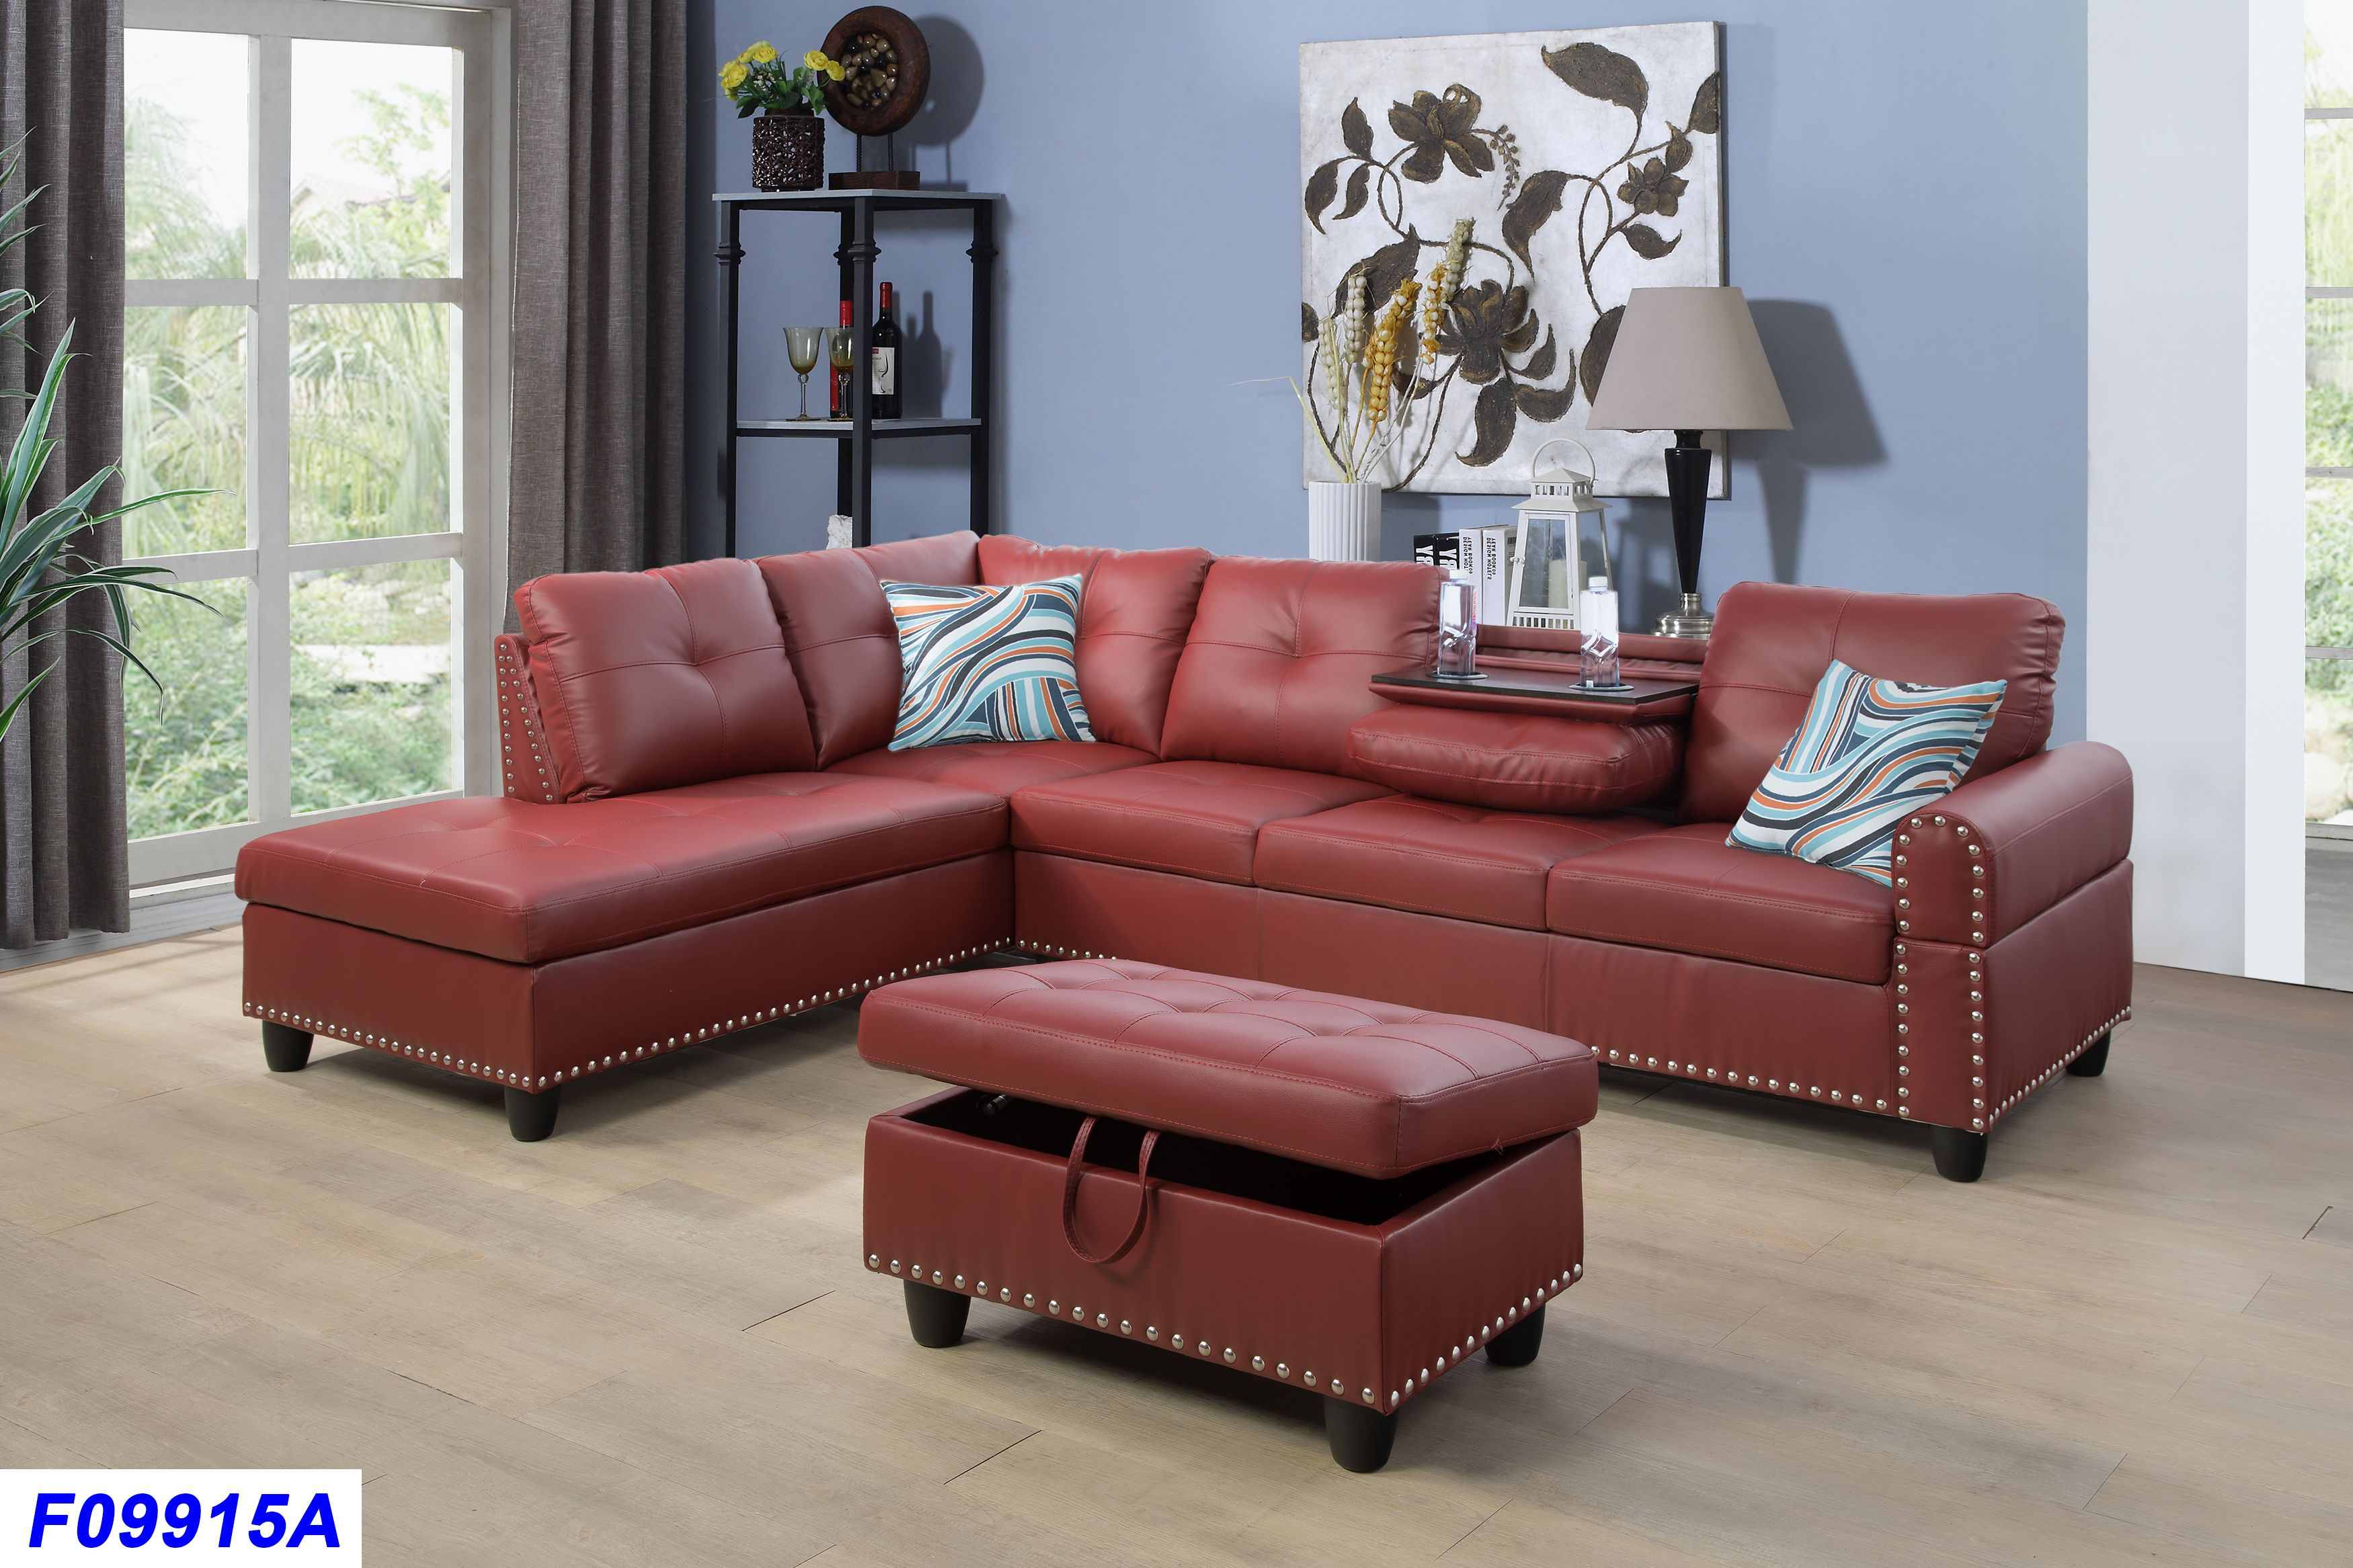 Kendall Red Polyester Sectional Sofa with Ottoman